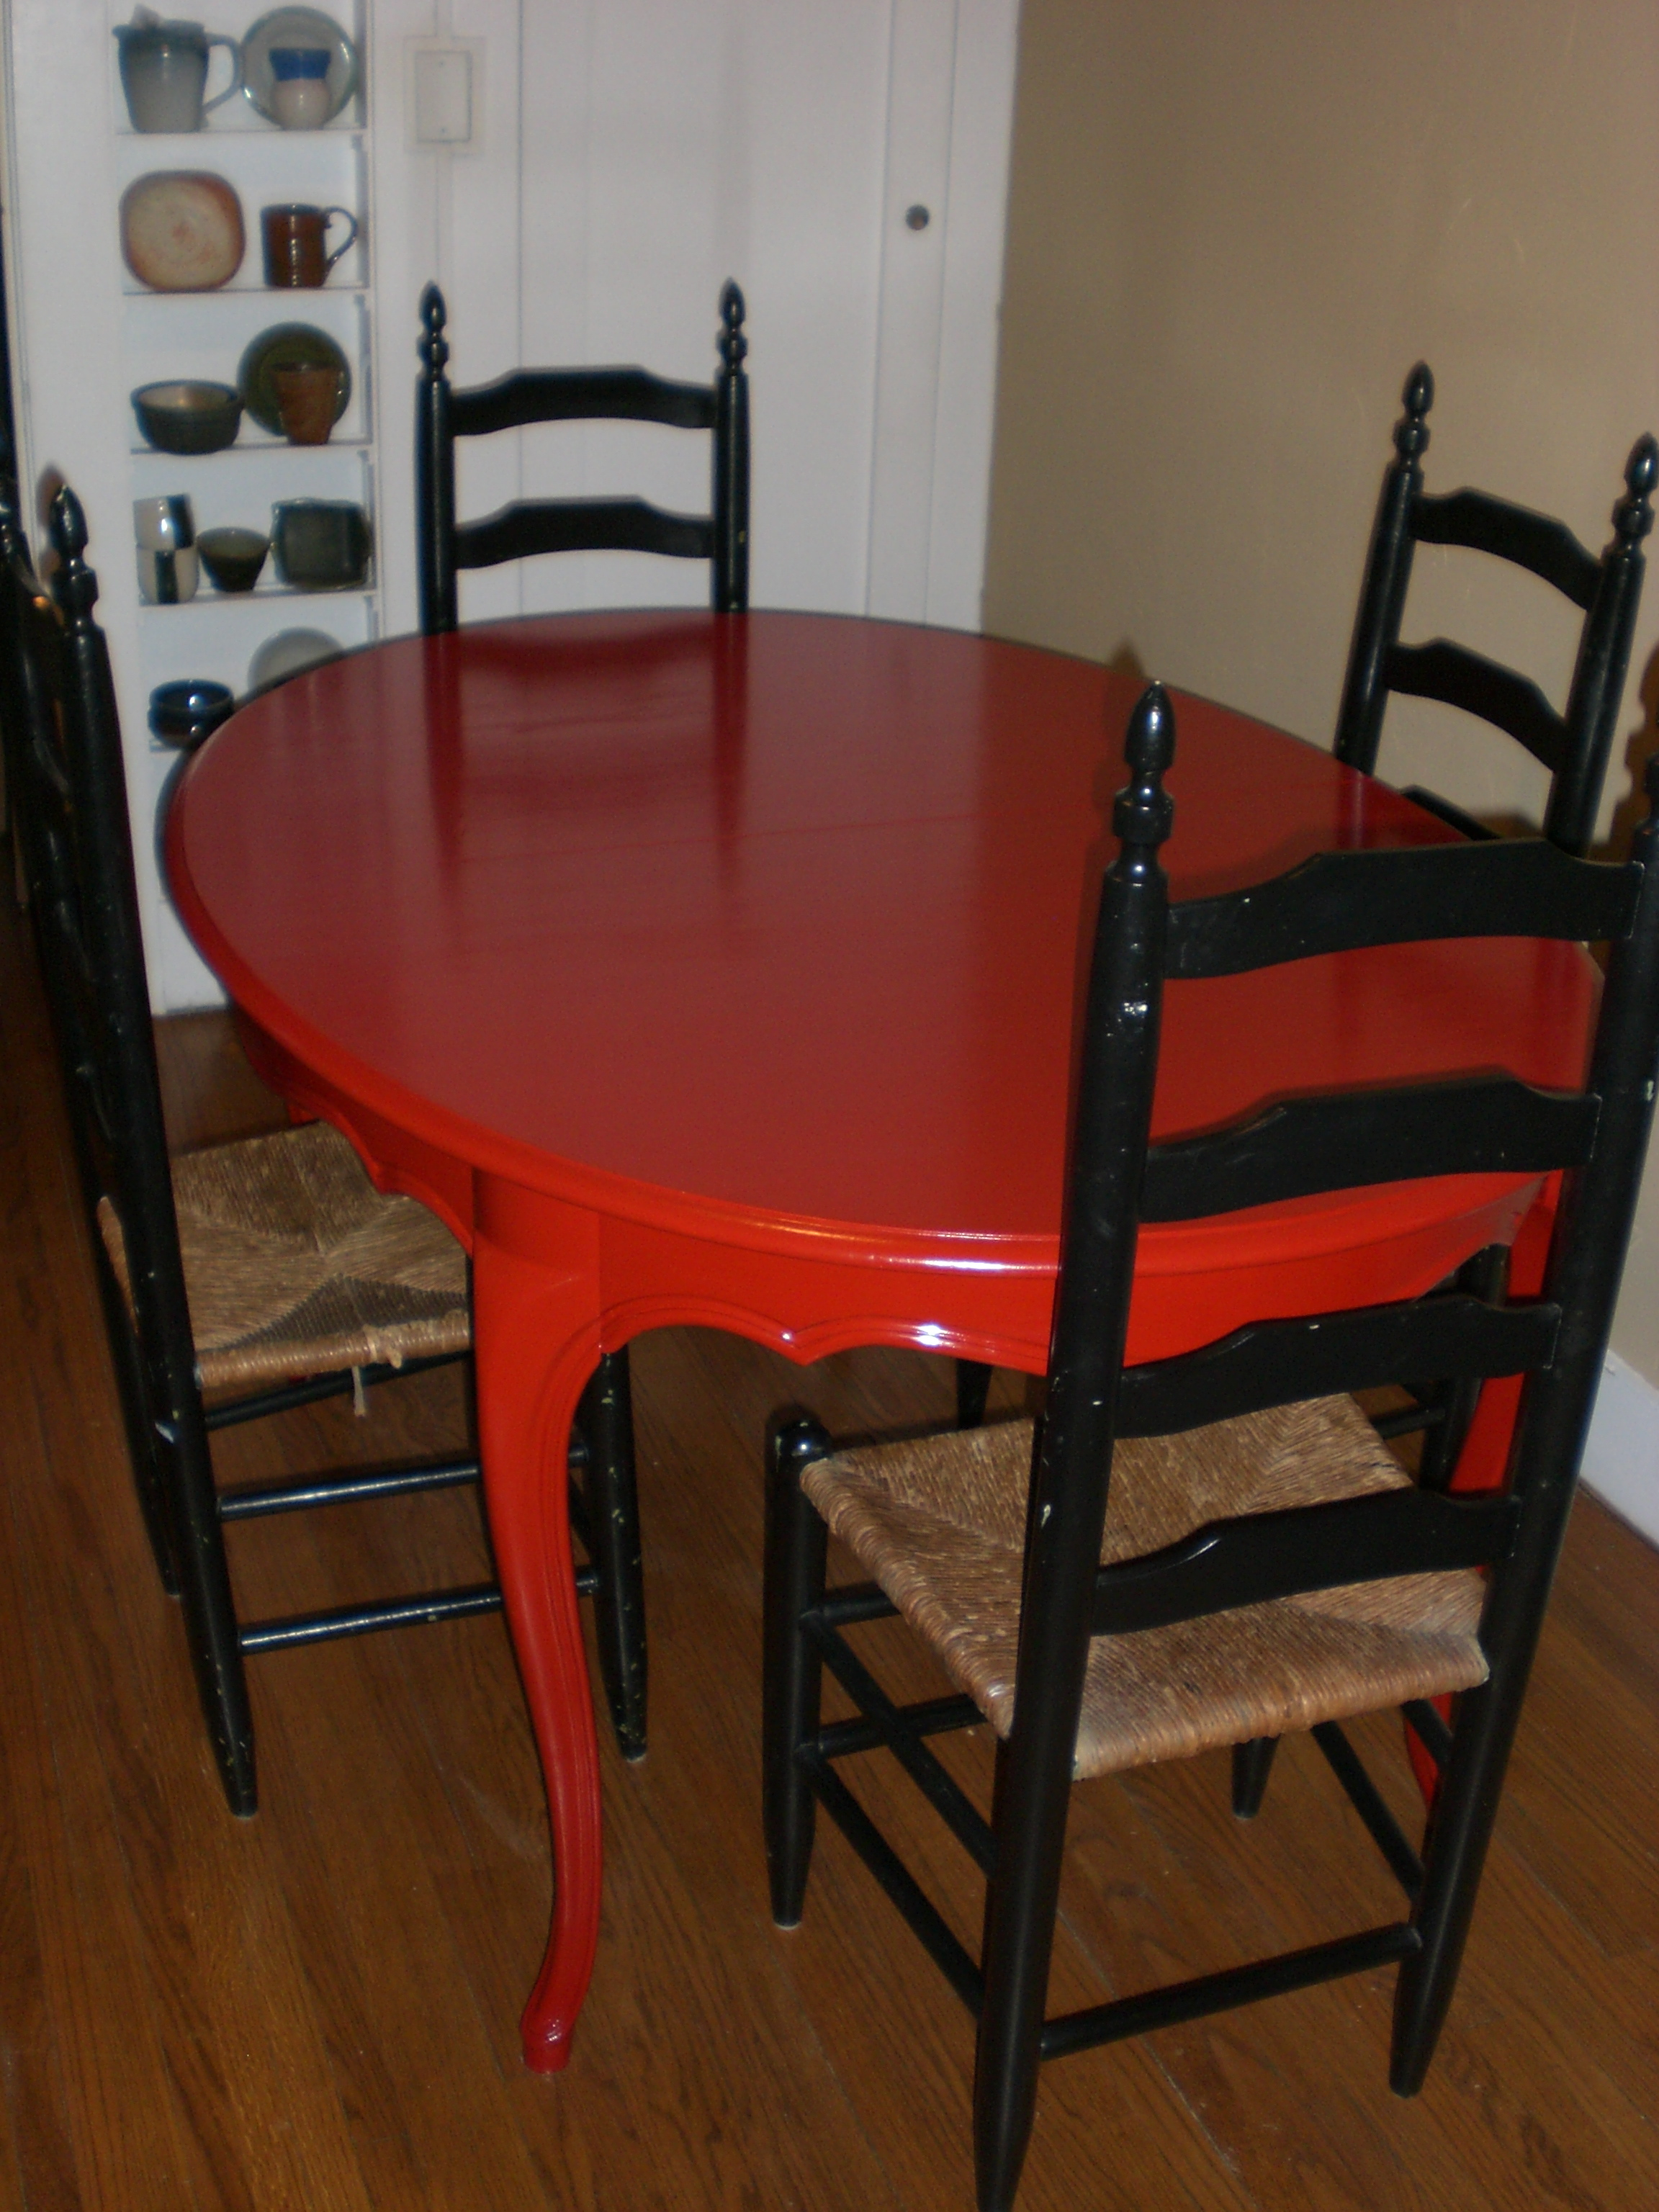 painting furniture painting kitchen table So after nine months my finished table